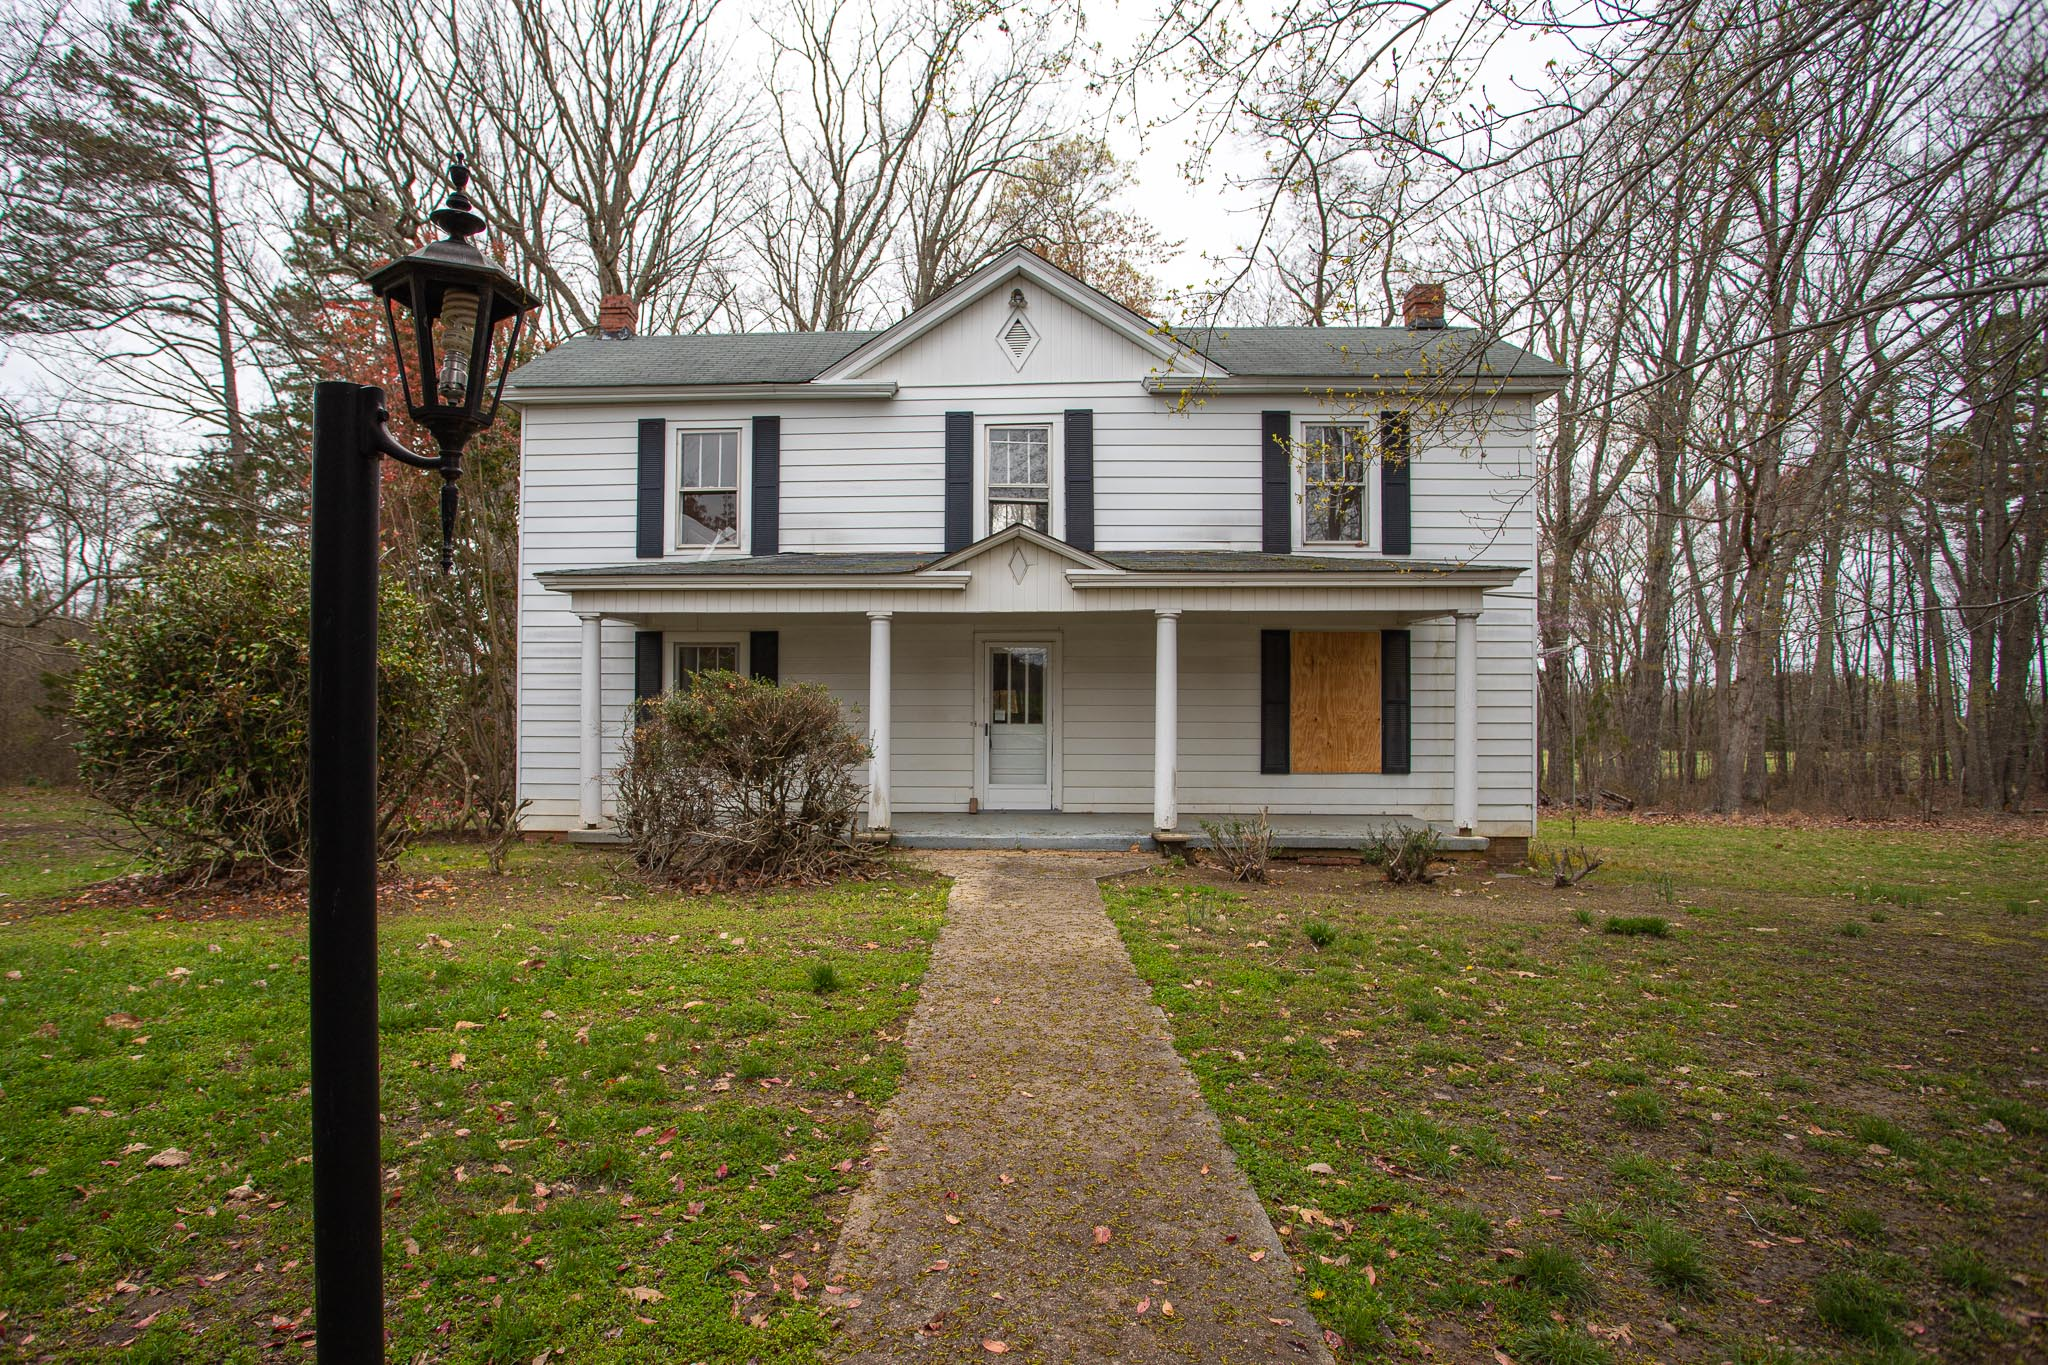 Home for Sale in Nathalie, 15103 L P Bailey Memorial Hwy